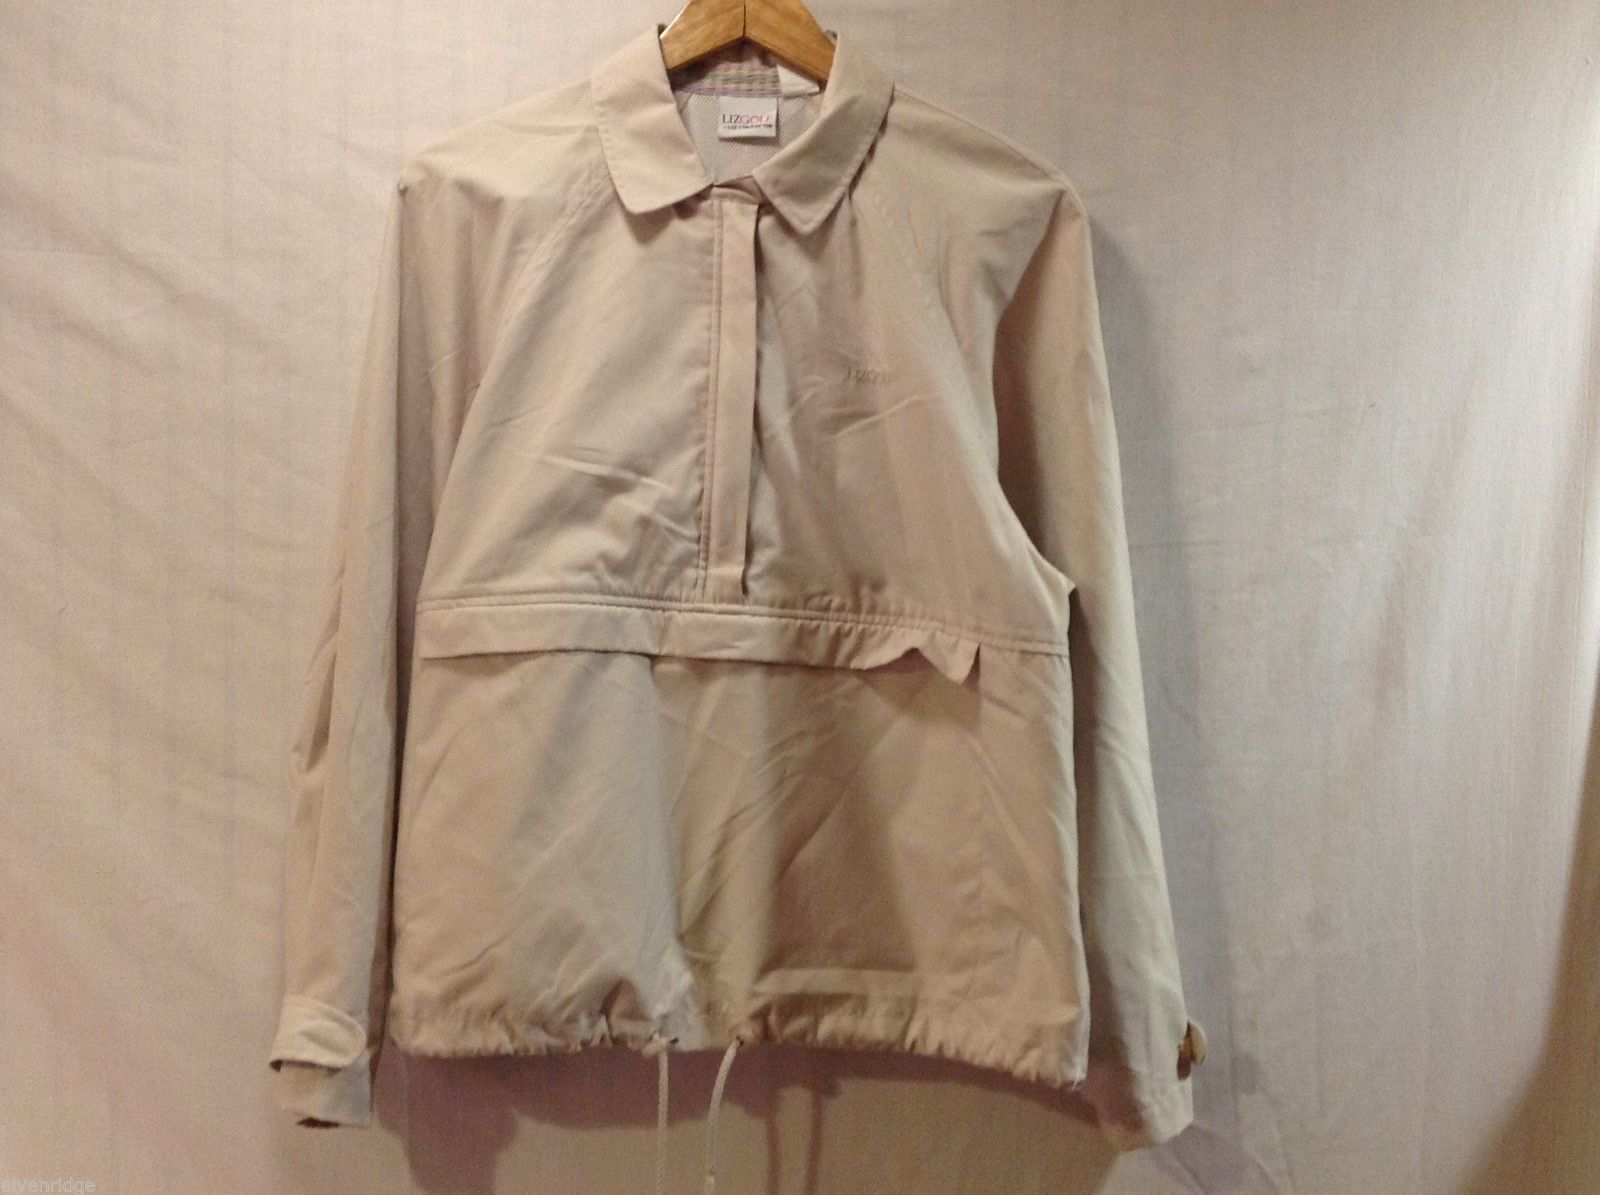 Liz Claiborne Womens Light Tan Windbreaker Jacket, Size Medium